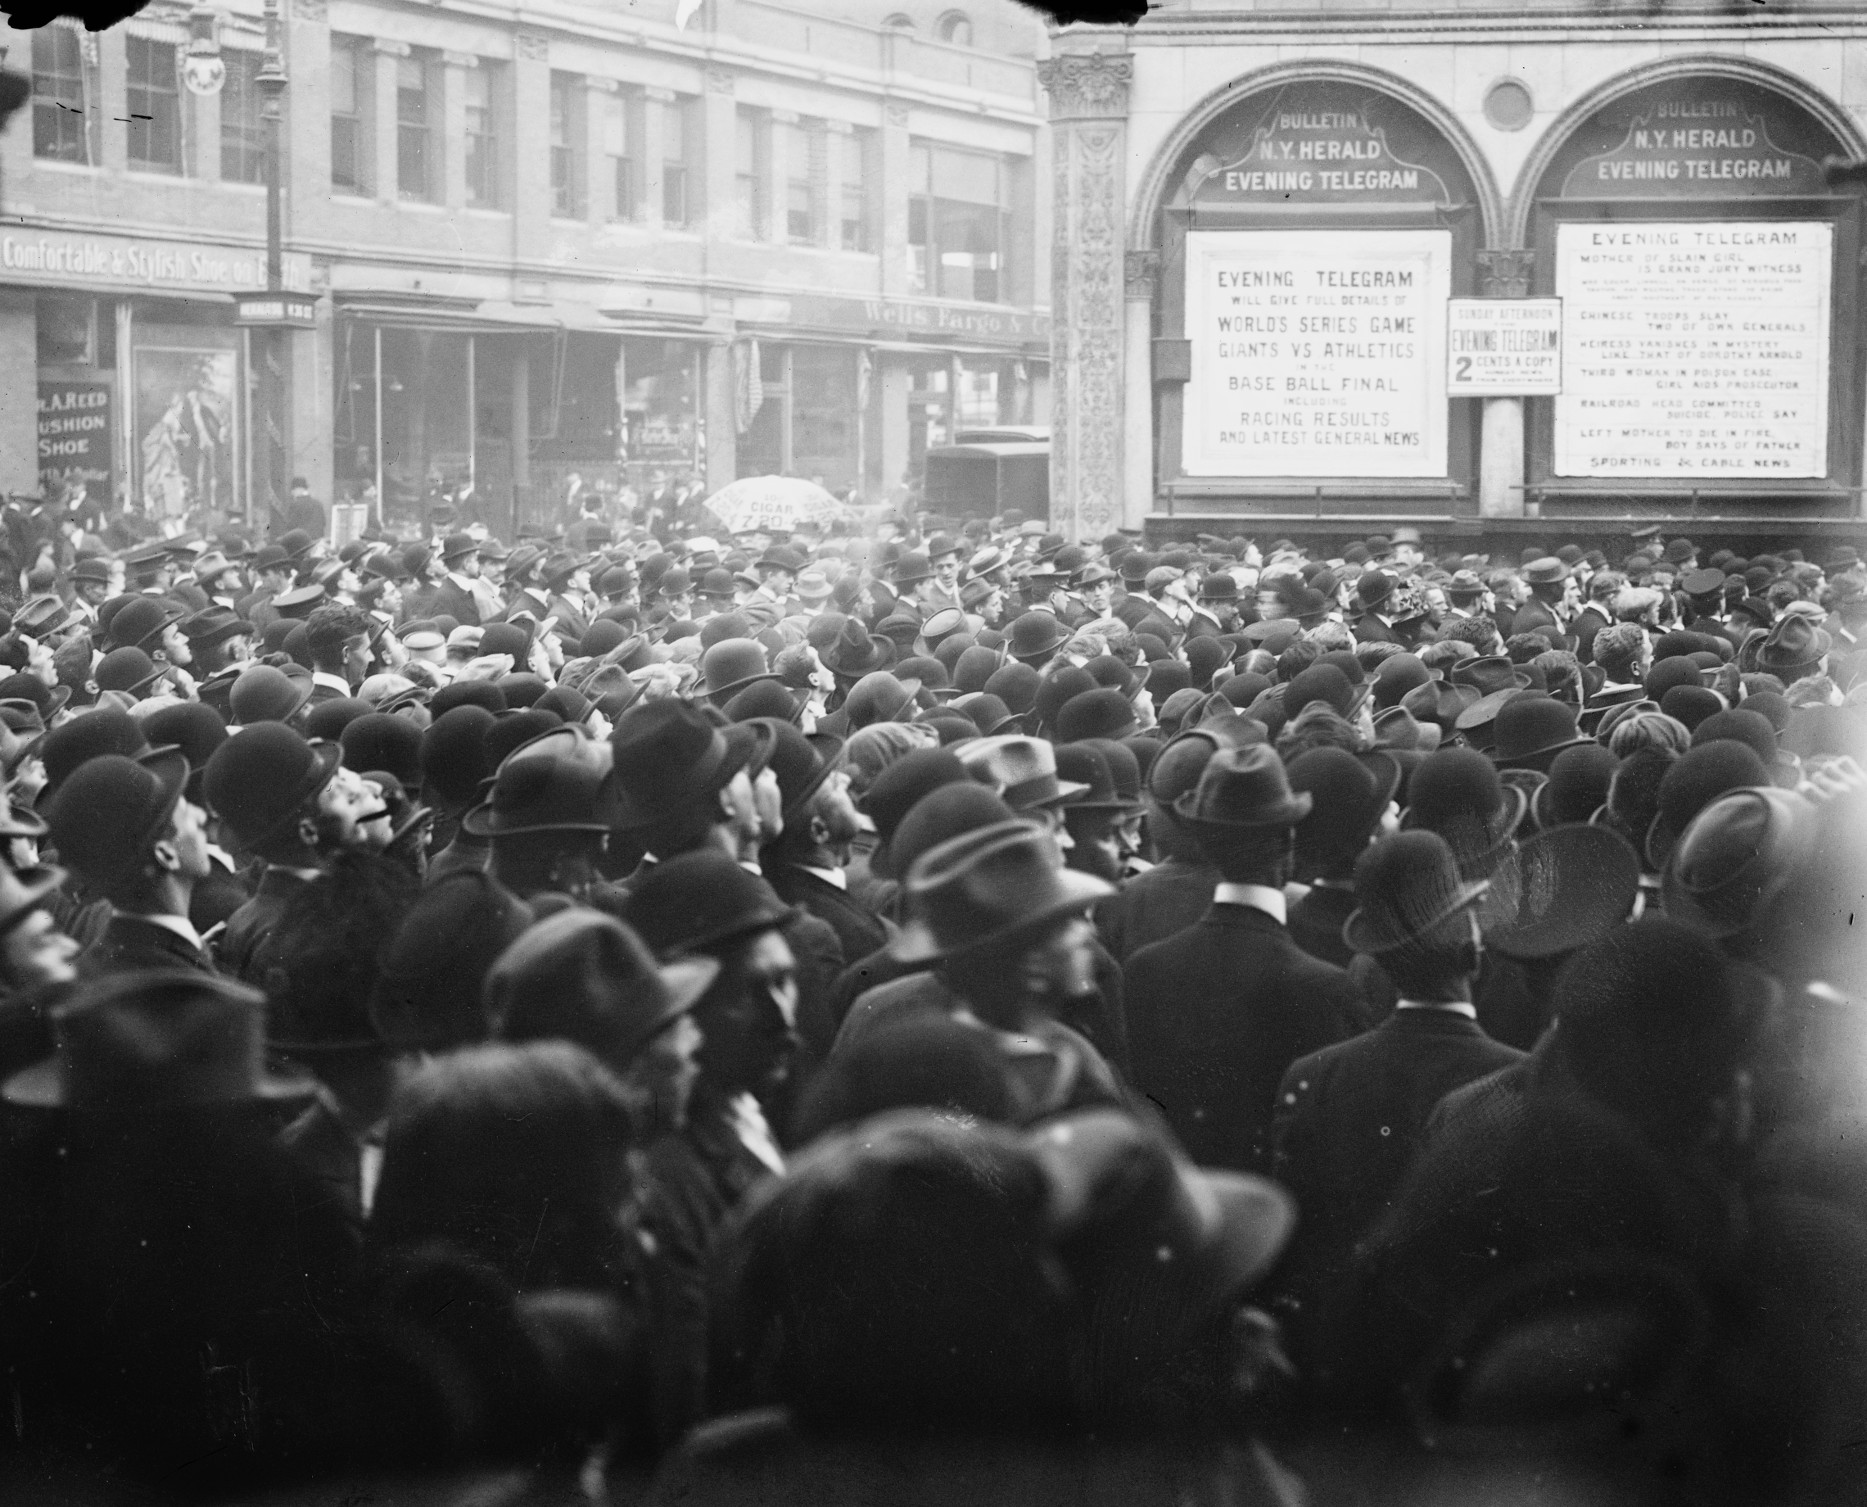 1911-World-Series-Game-6-outside-New-York-Herald-Building.jpg